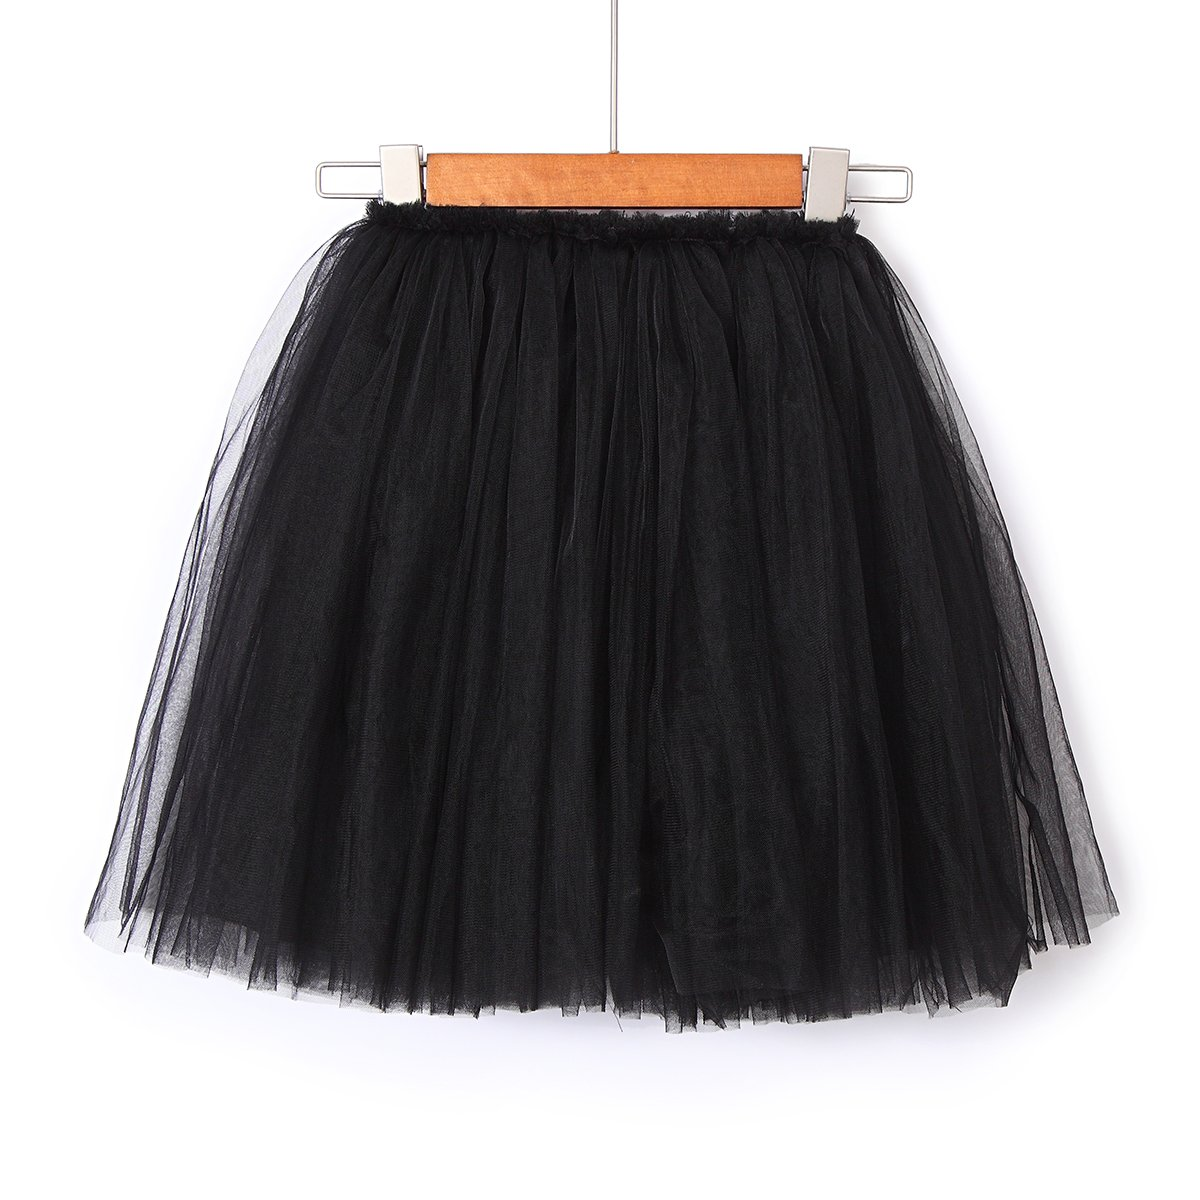 Flofallzique 6 Colors Ankle Length 1-10 Year Old Girls Skirt Dancing Party Skirt Long Tulle Puffy Skirt for Kids